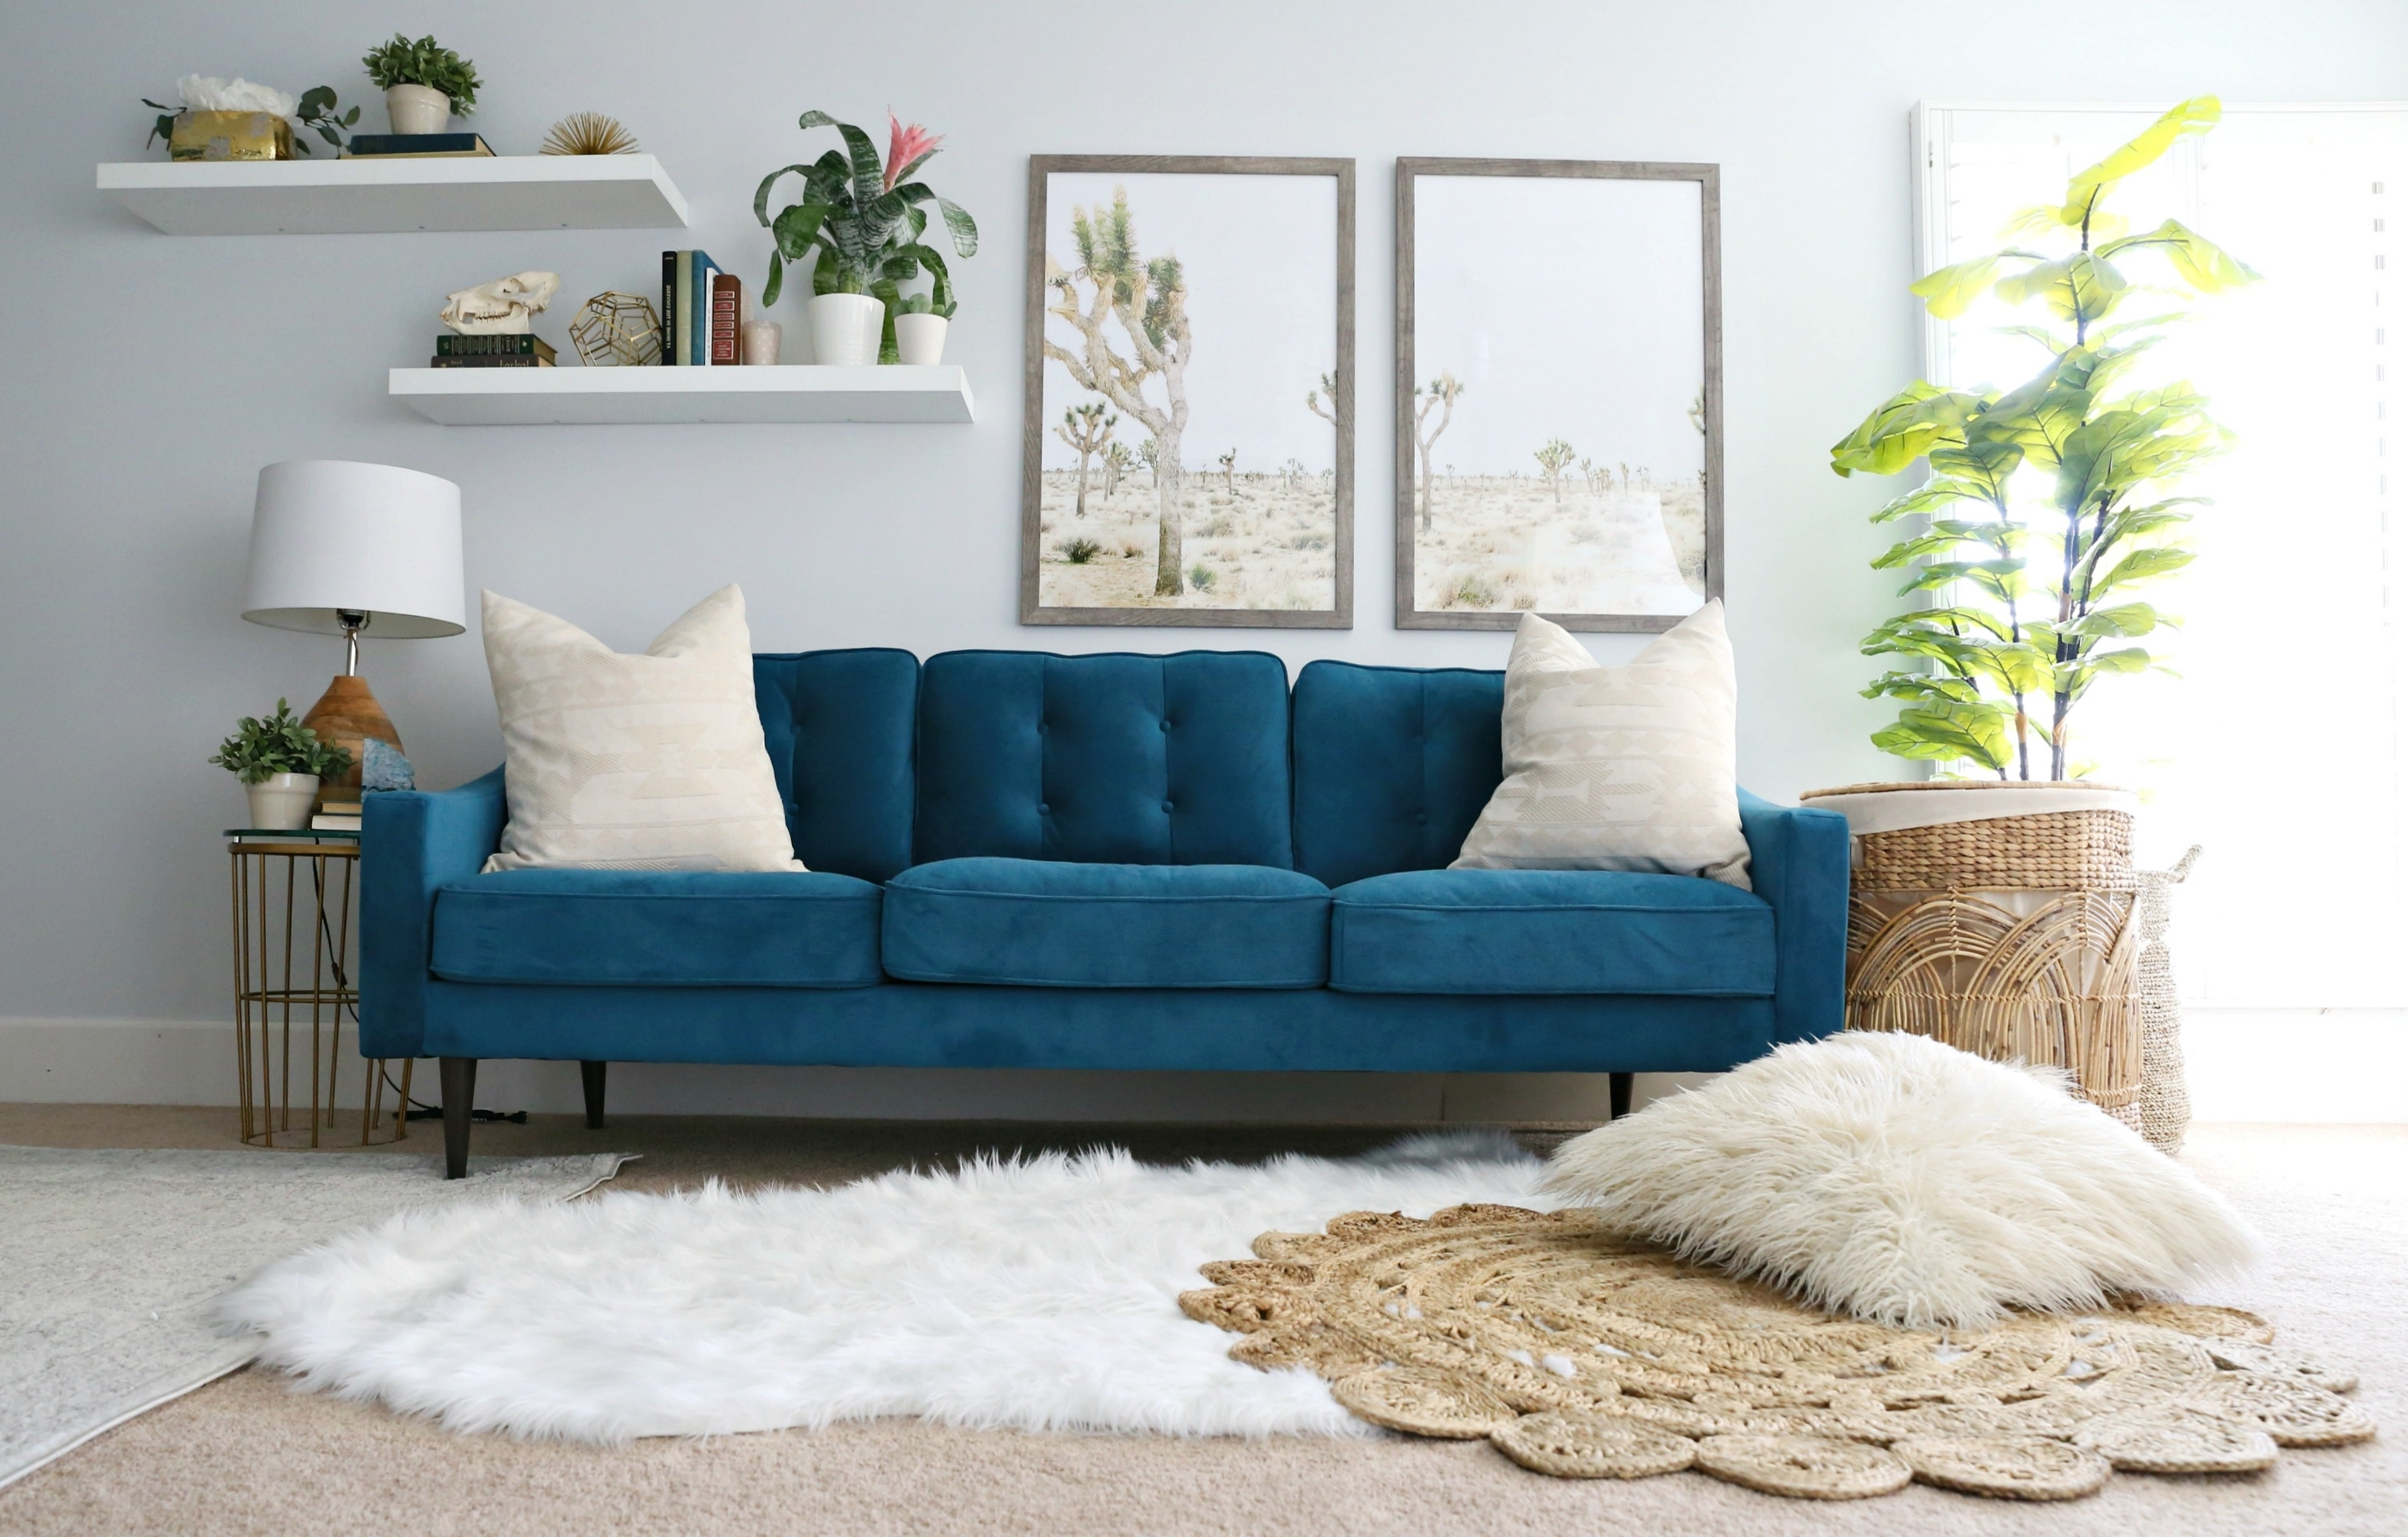 Trendy Sectional Sofas Under 200 Pertaining To Loveseat : Comfy L Shaped Sofa Tan L Shaped Couch Sofa Under  (View 18 of 20)